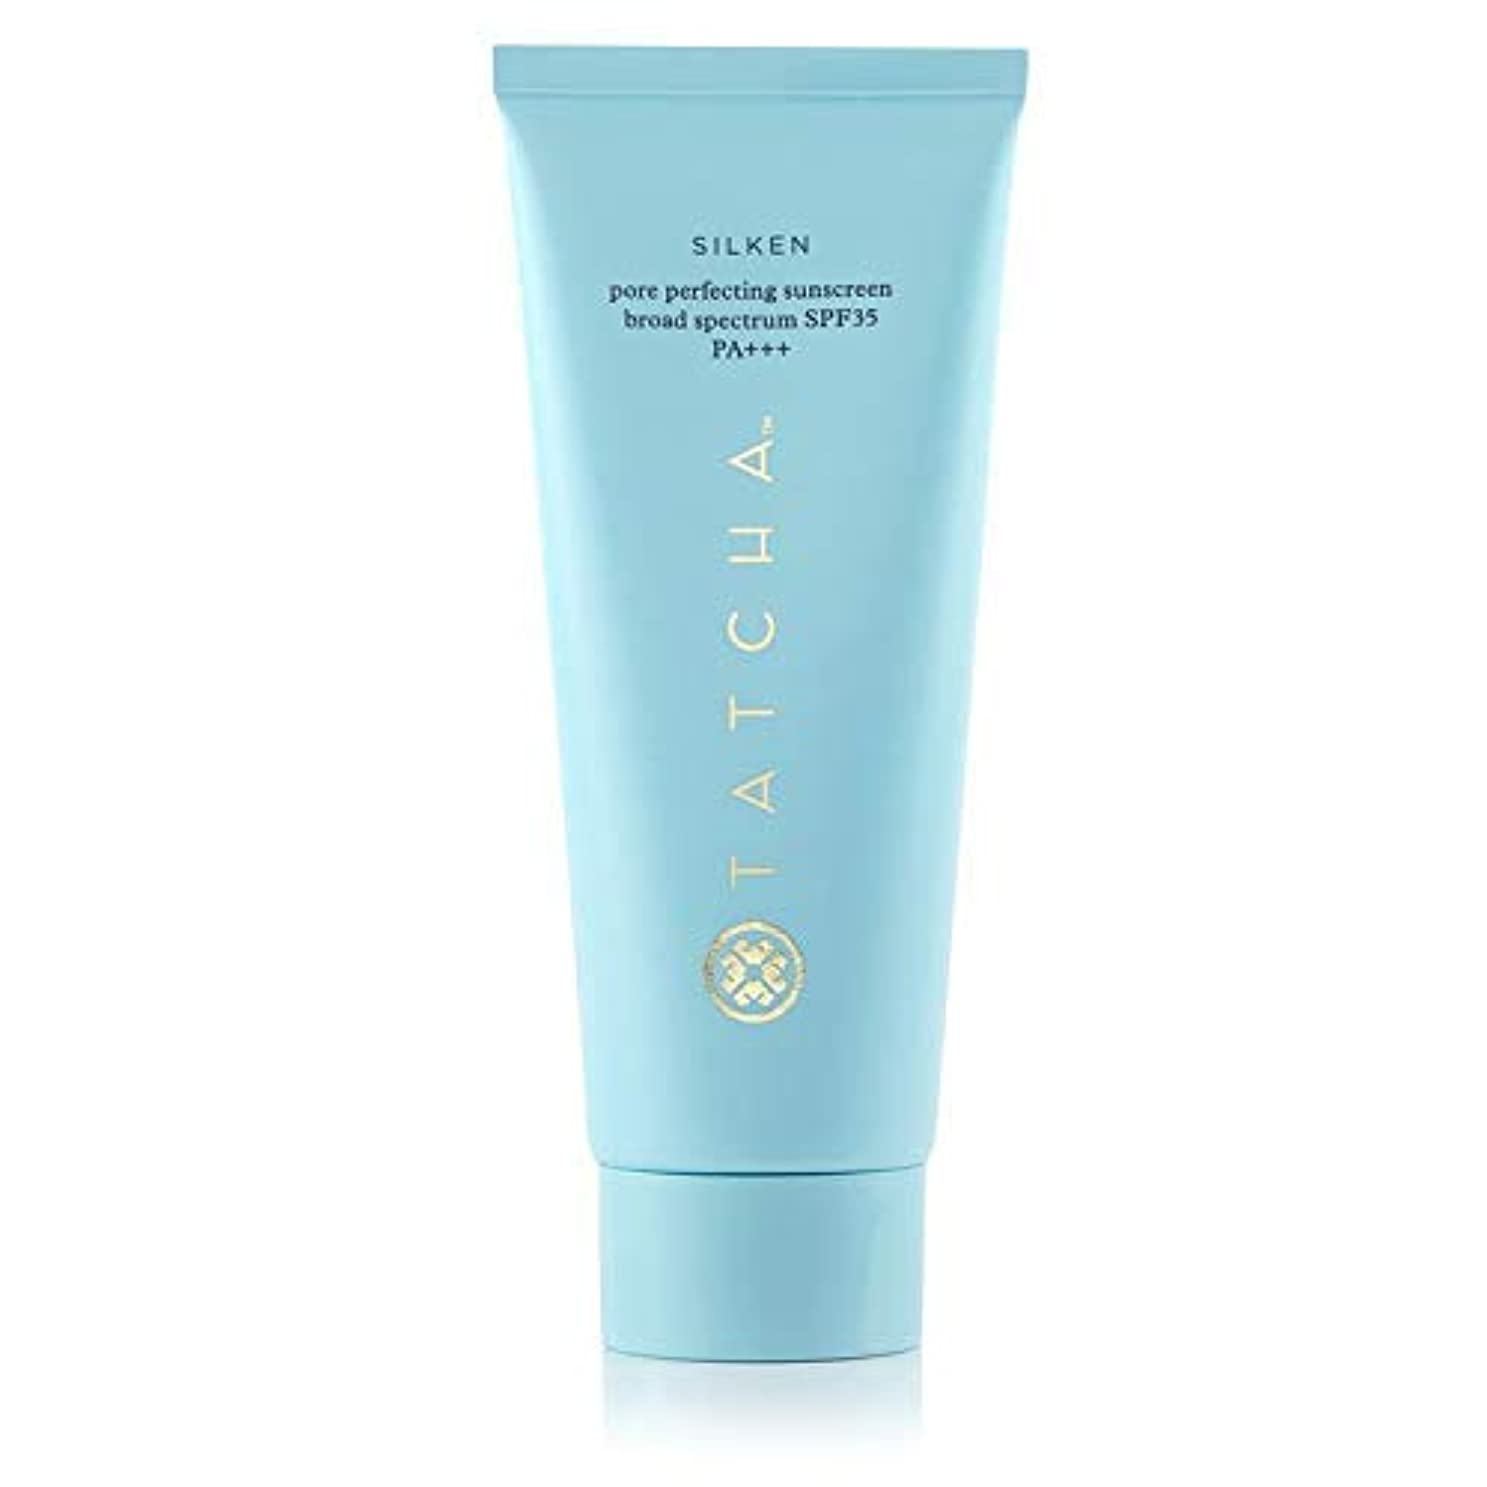 お茶マインドうねるTATCHA SILKEN PORE PERFECTING SUNSCREEN Broad Spectrum SPF35 PA+++ 2 oz/ 59 mLタチャ 日焼け止めクリーム